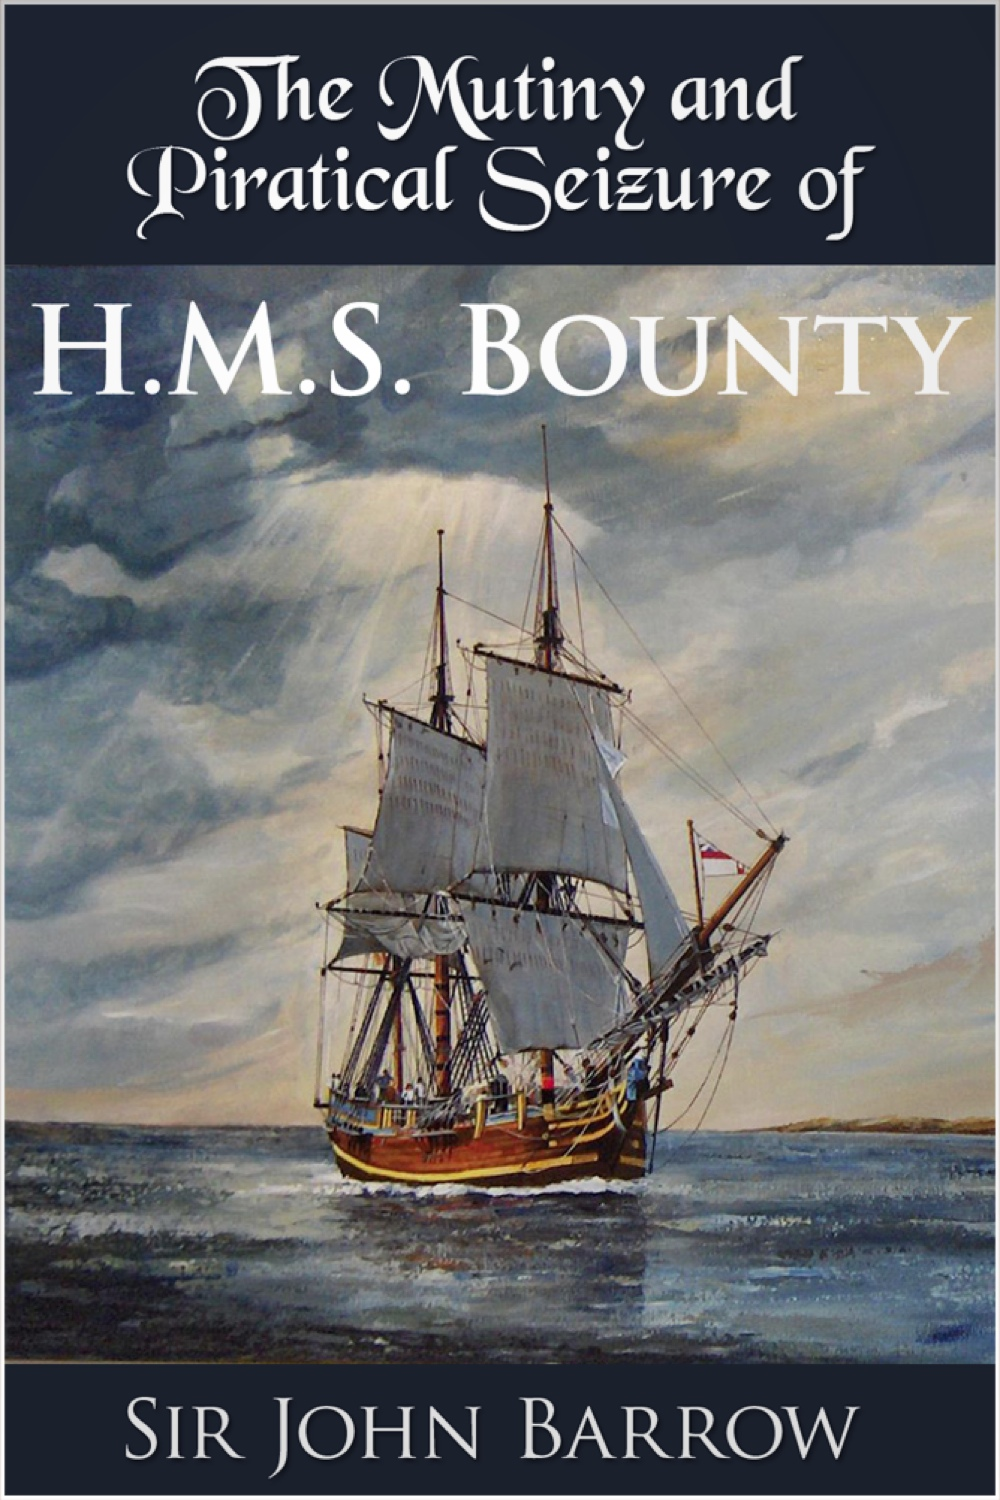 The Mutiny and Piratical Seizure of H.M.S. Bounty By: Sir John Barrow